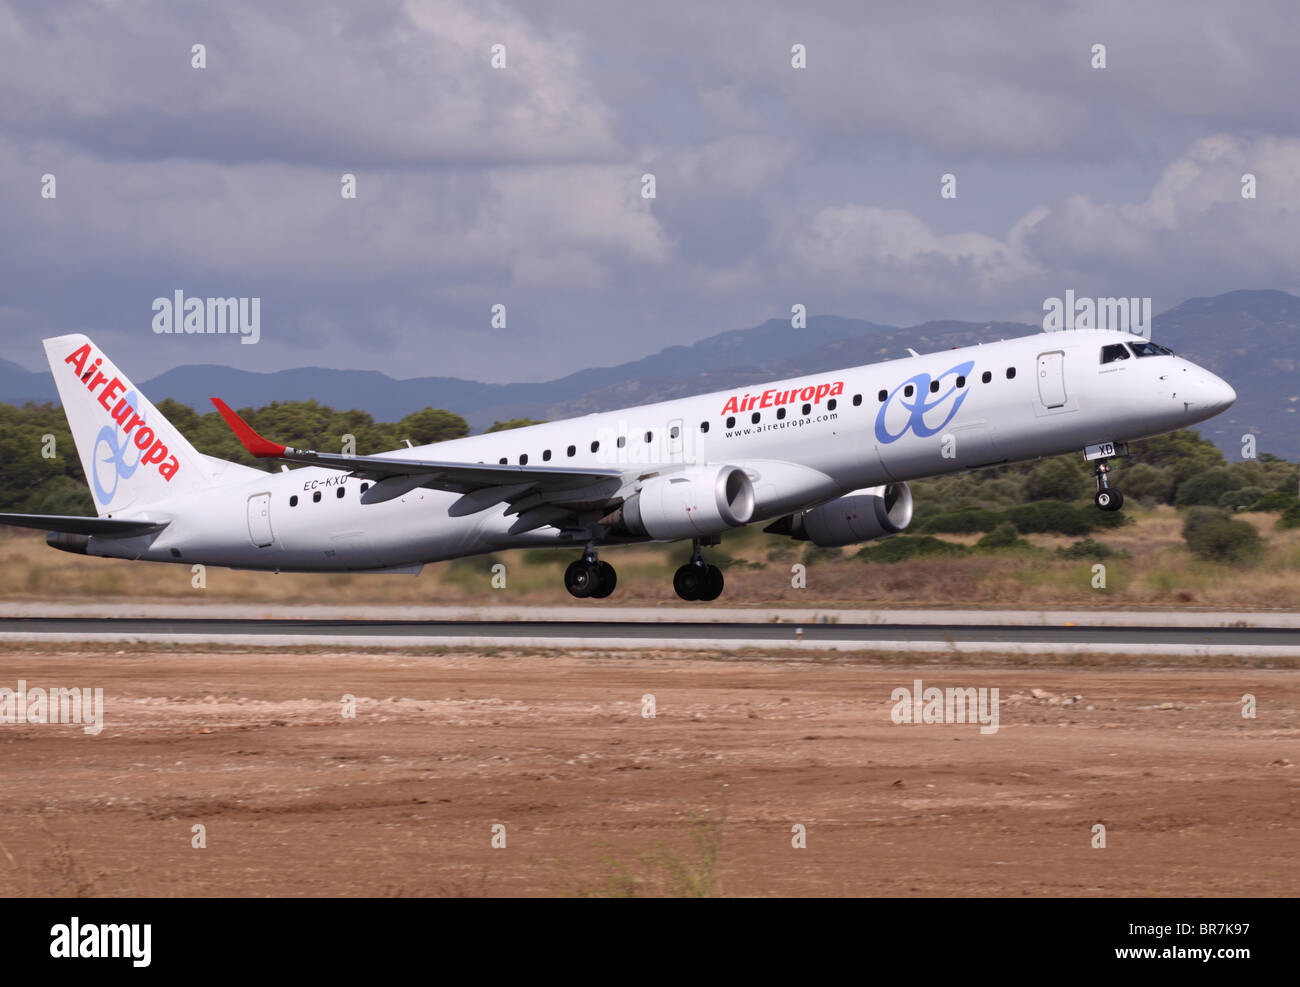 Air Europa Embraer 195 aircraft airline airliner taking off at Palma airport Mallorca Spain in 2010 - Stock Image